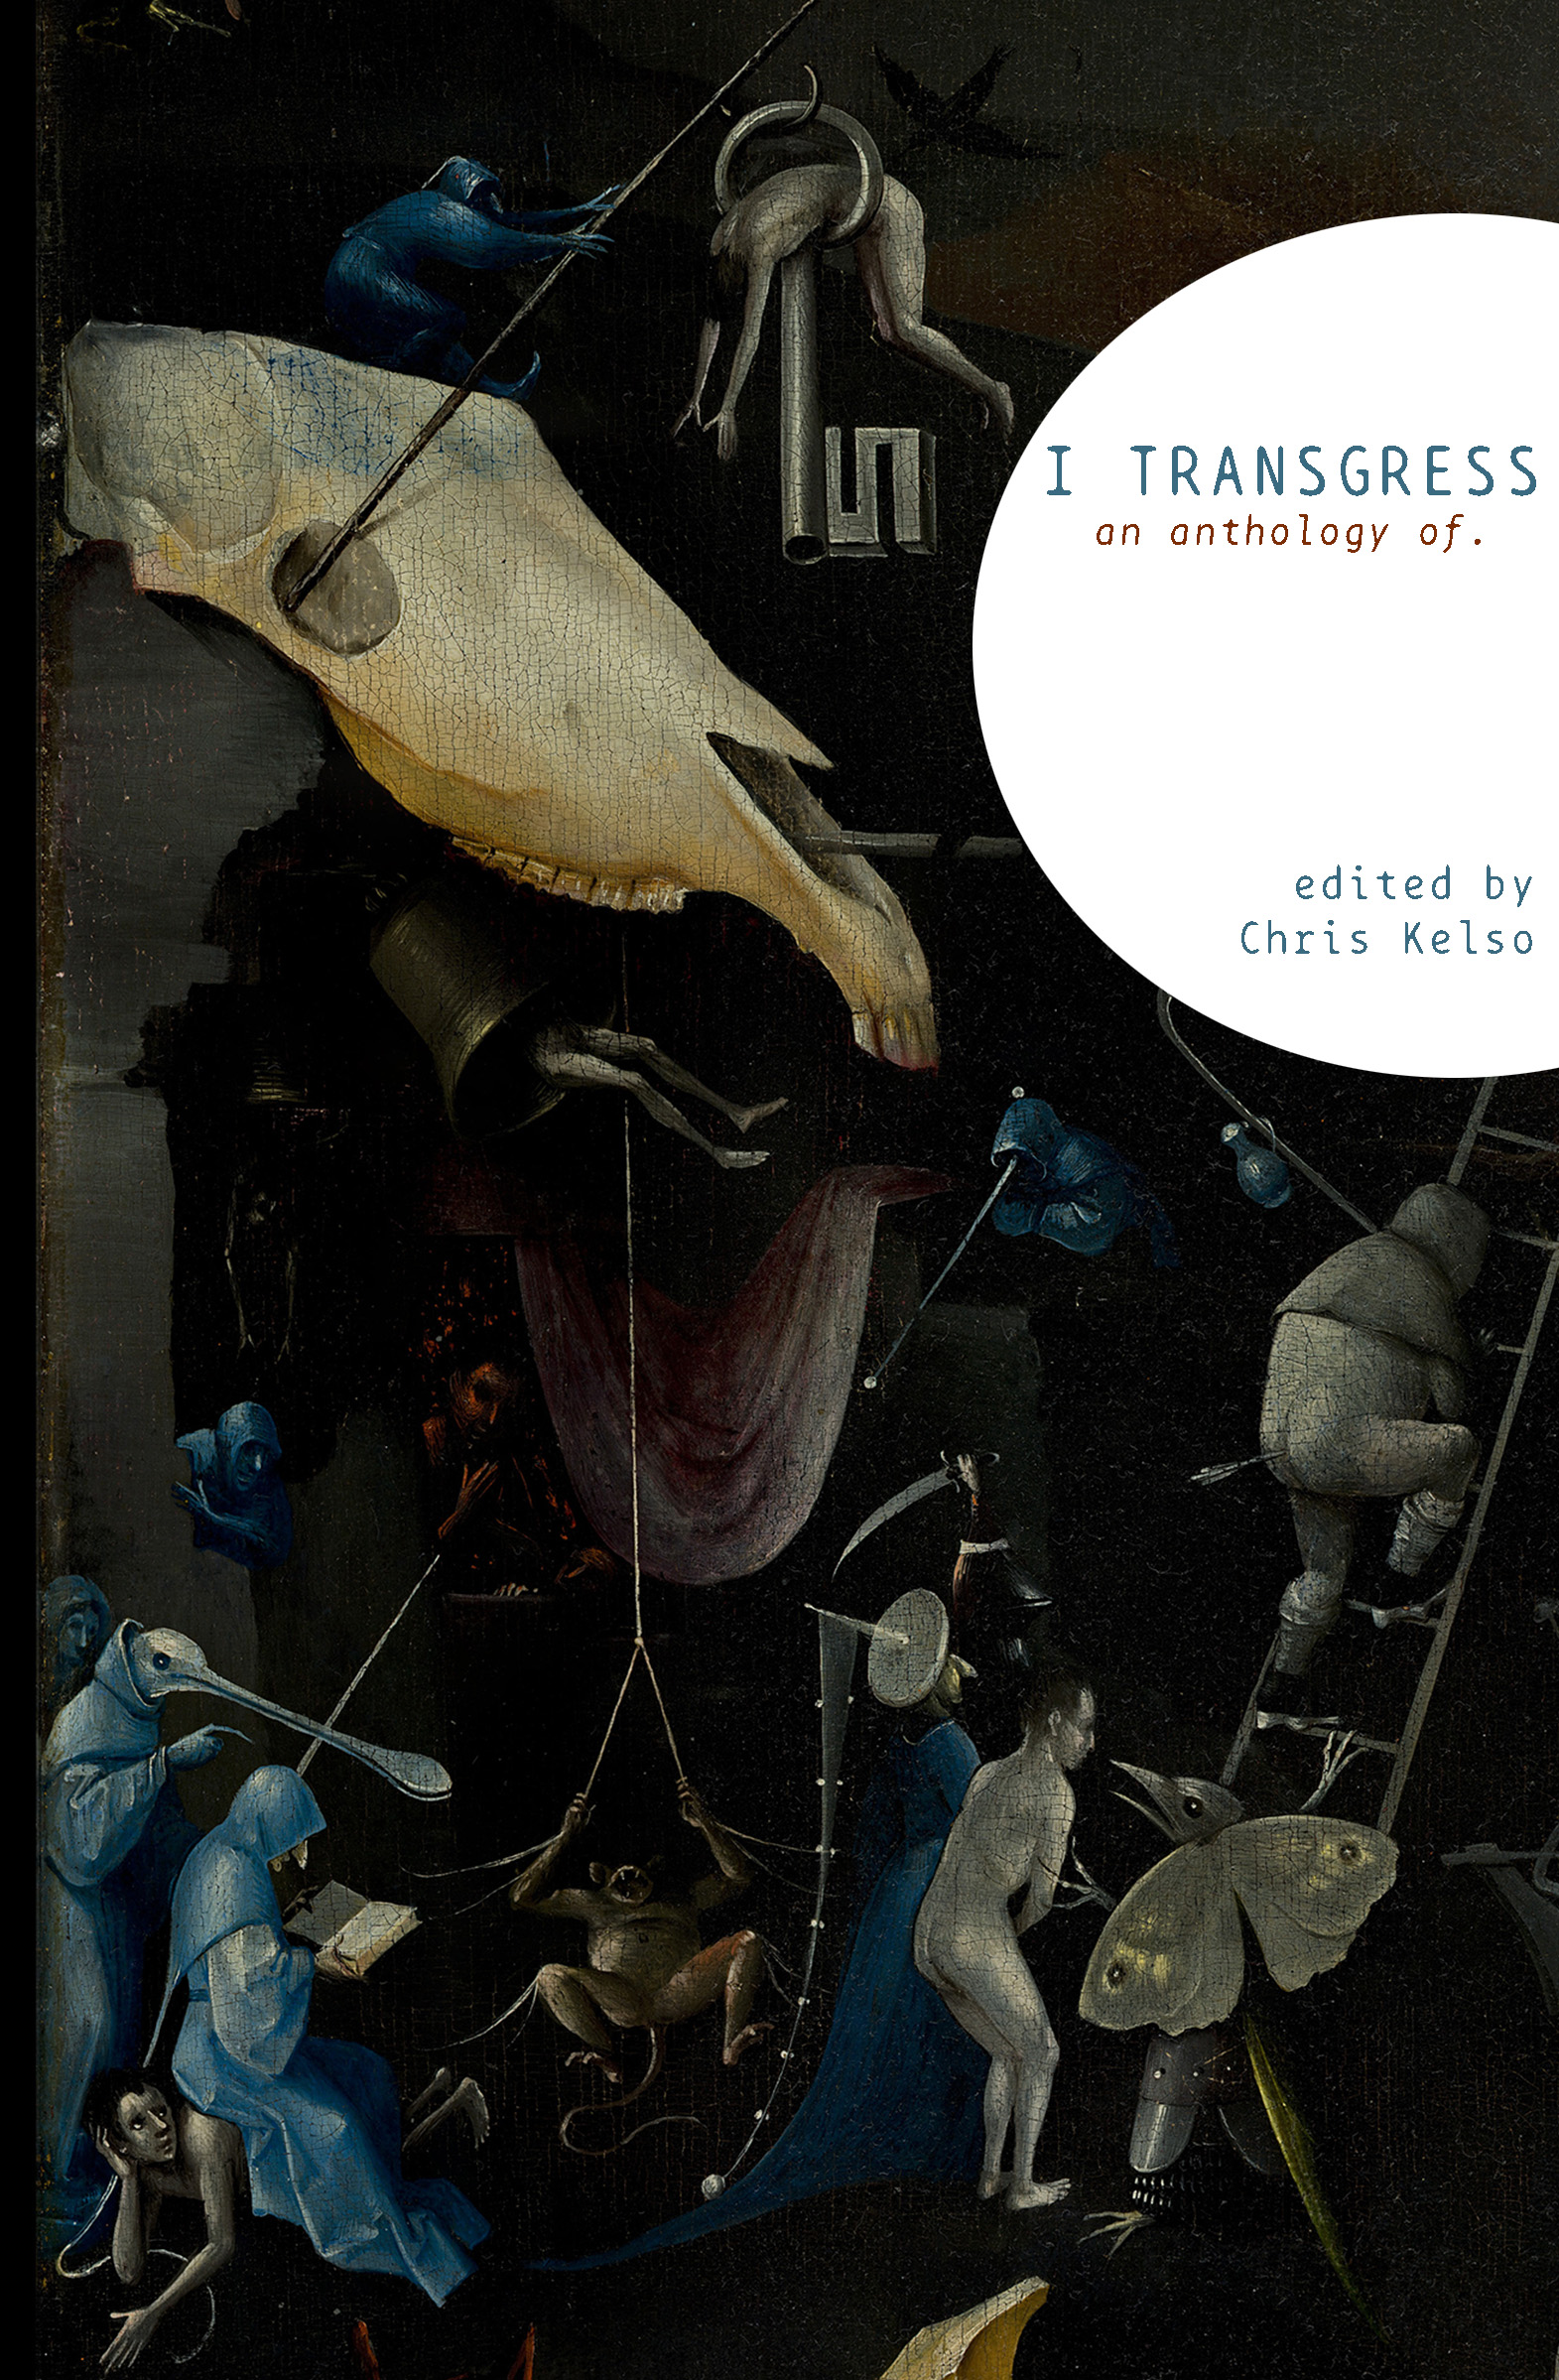 I TRANSGRESS: An Anthology Of Transgressive Fiction